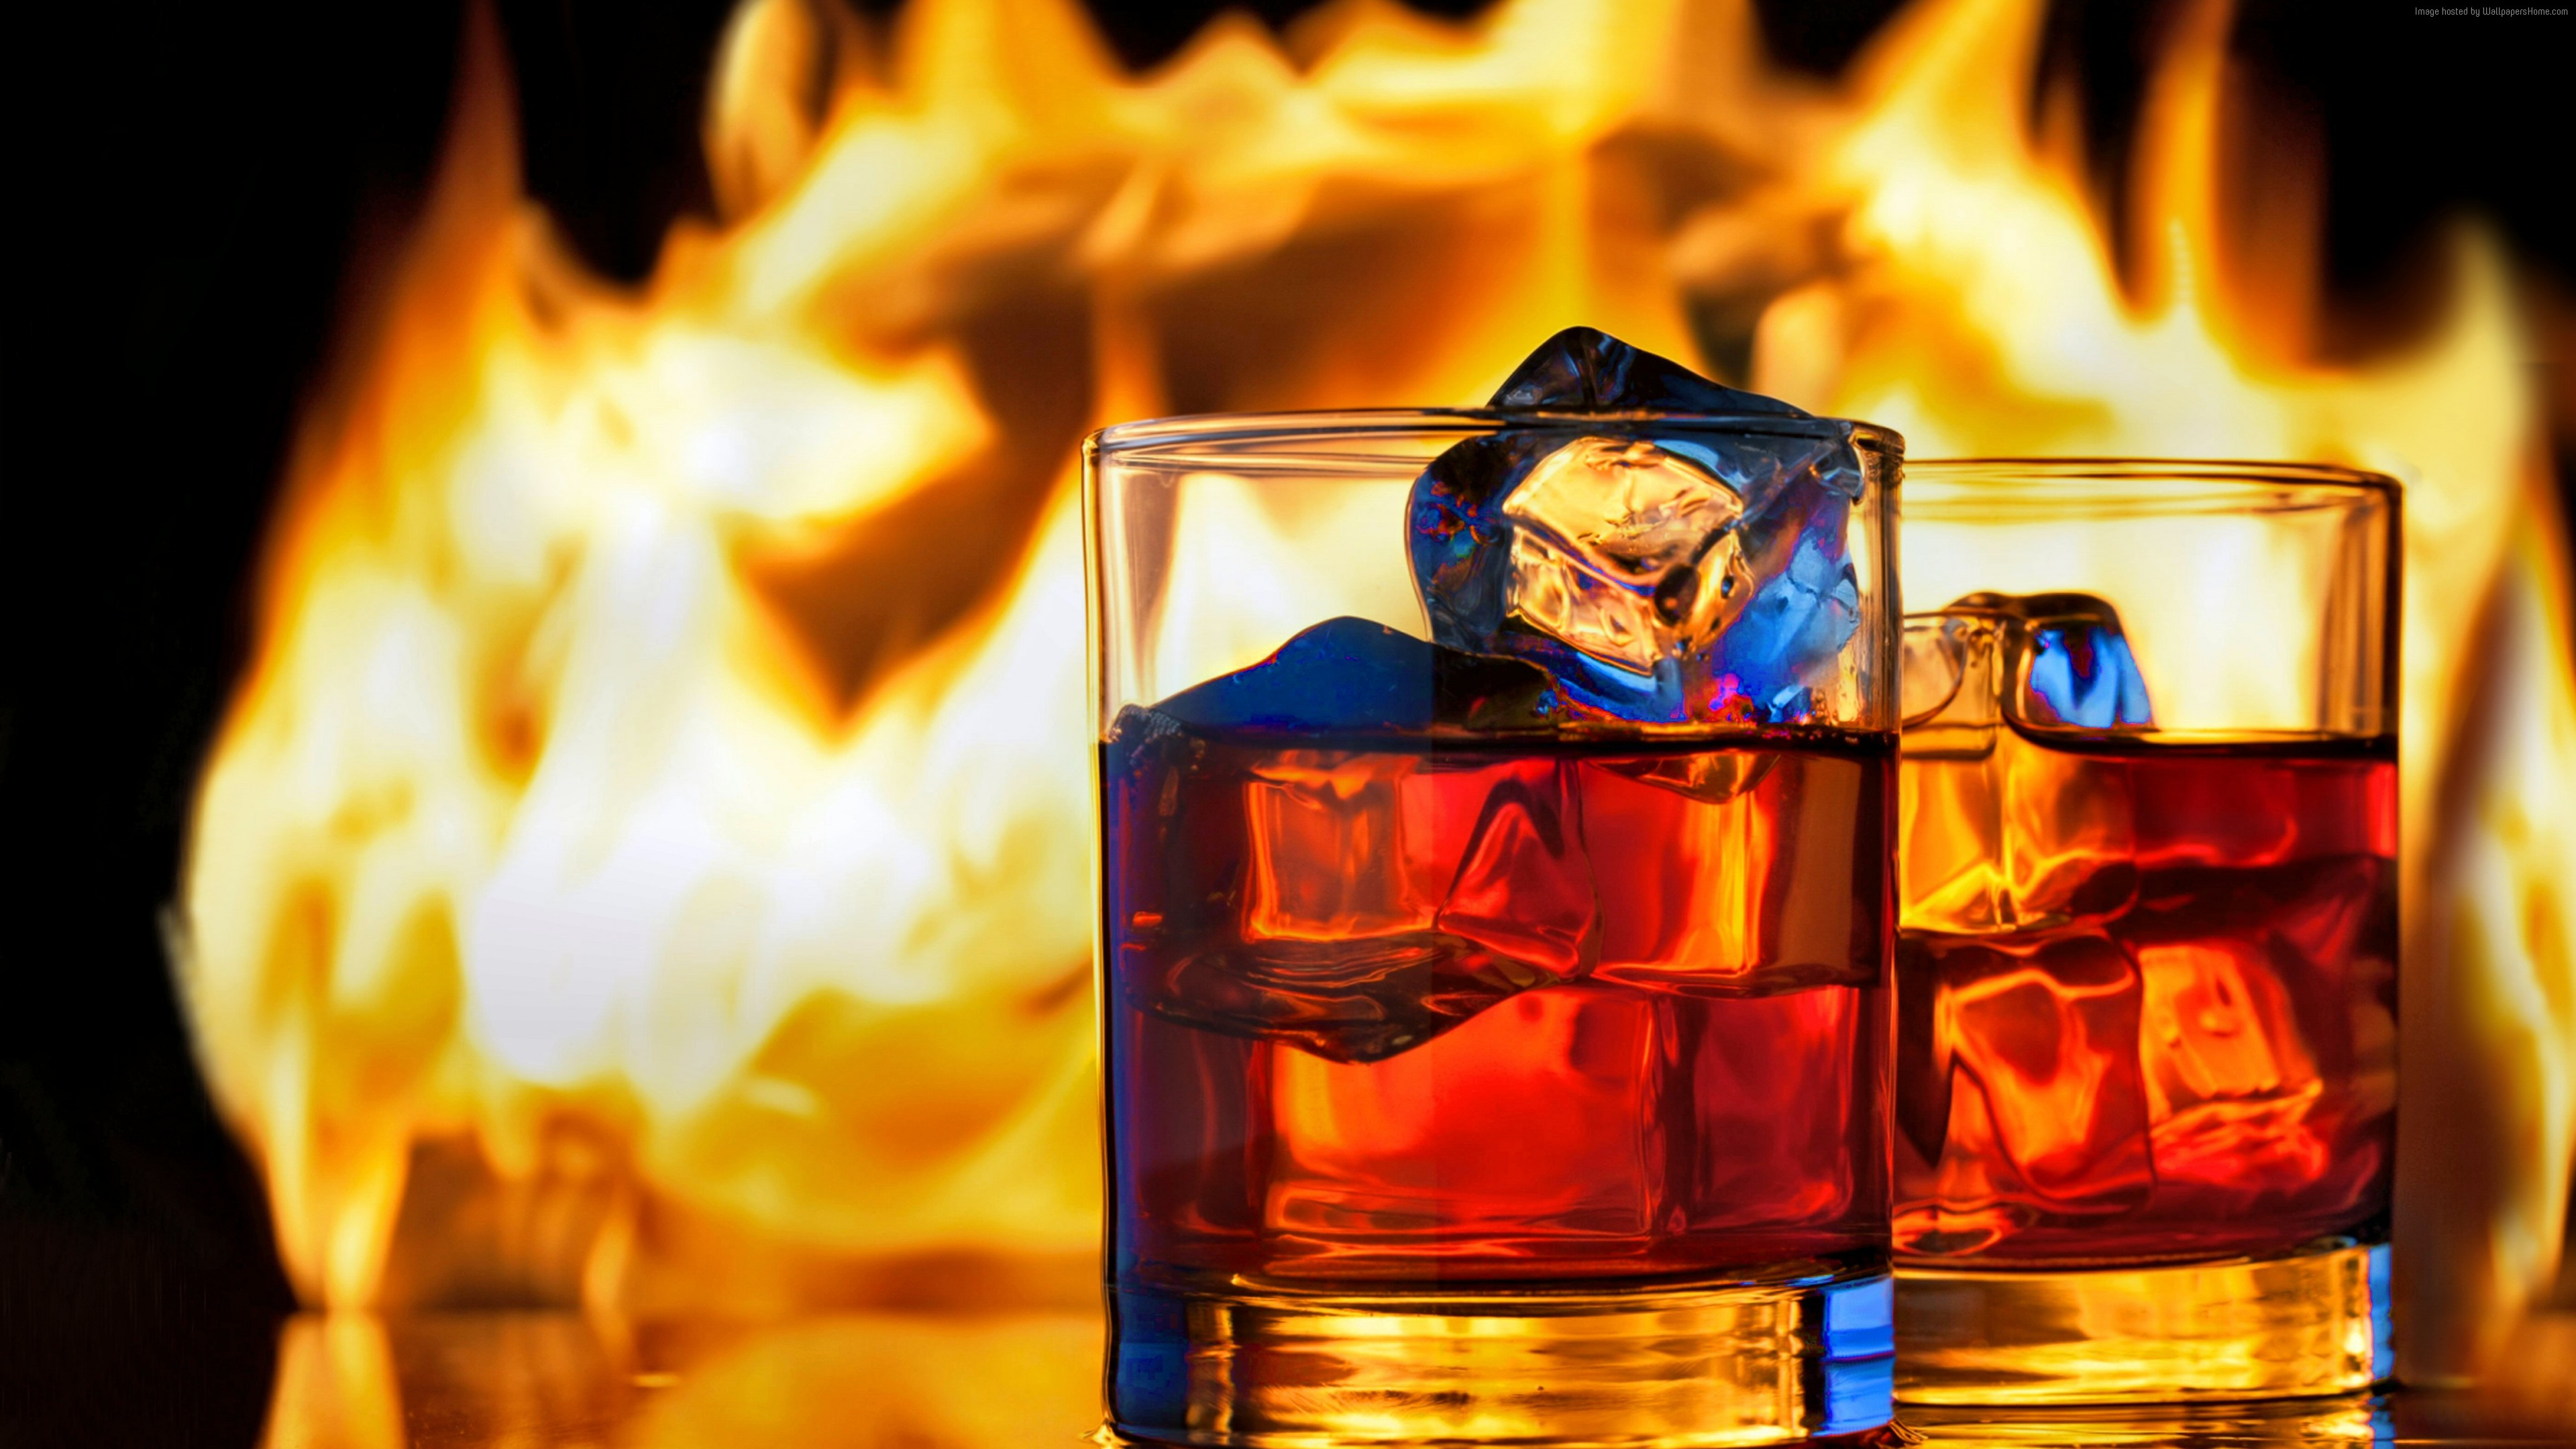 Wallpaper whiskey, fire, ice, 5k, Food